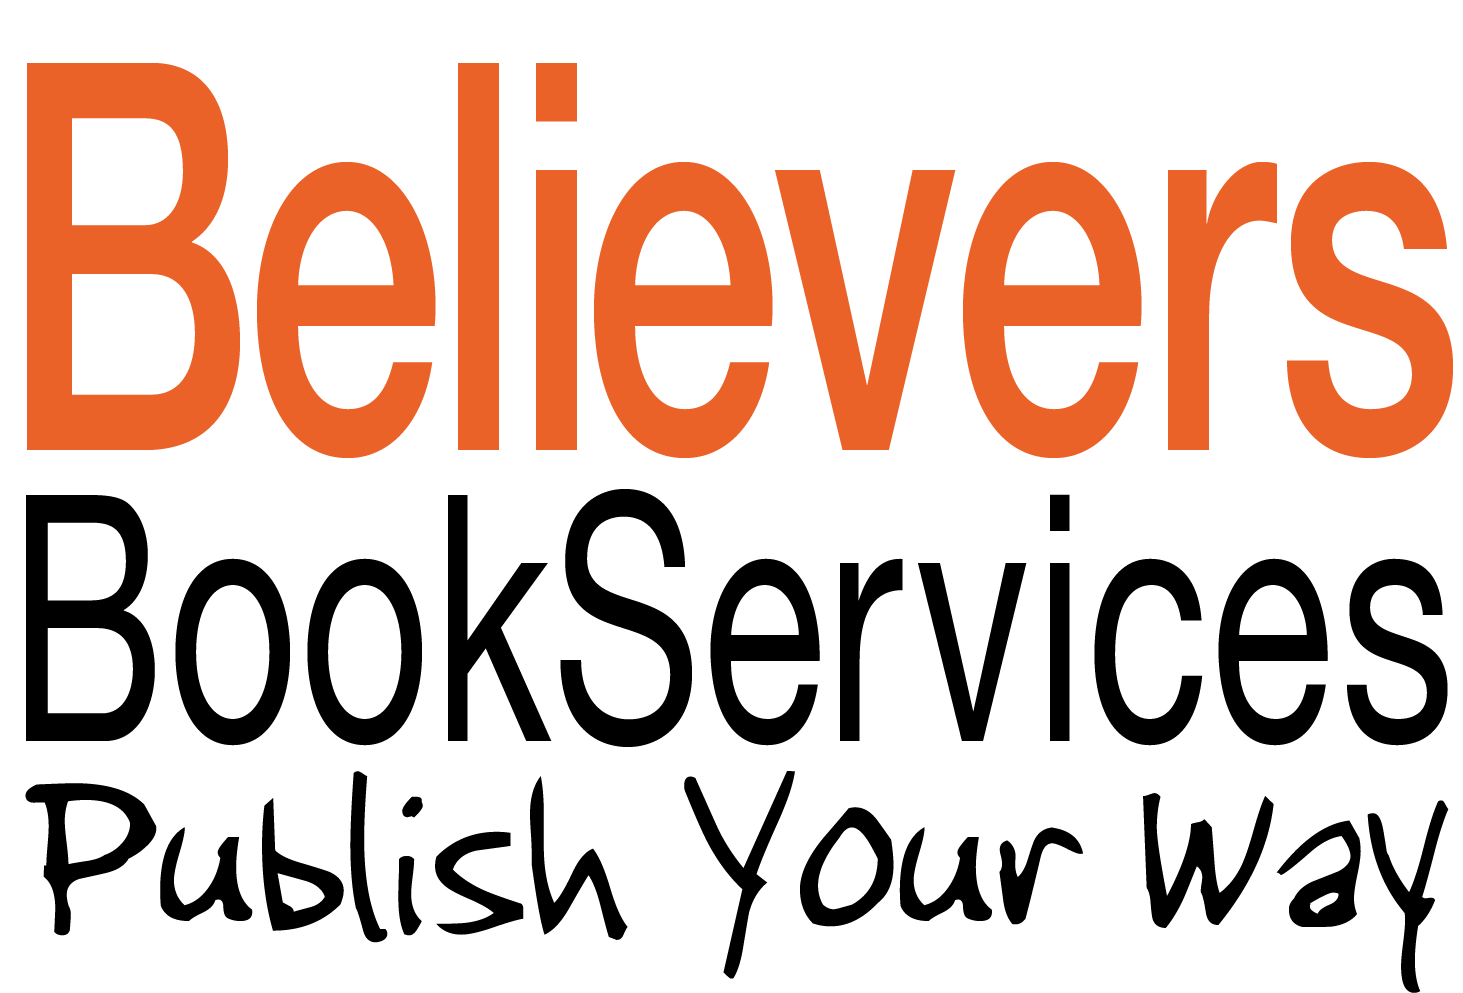 believersbookservices